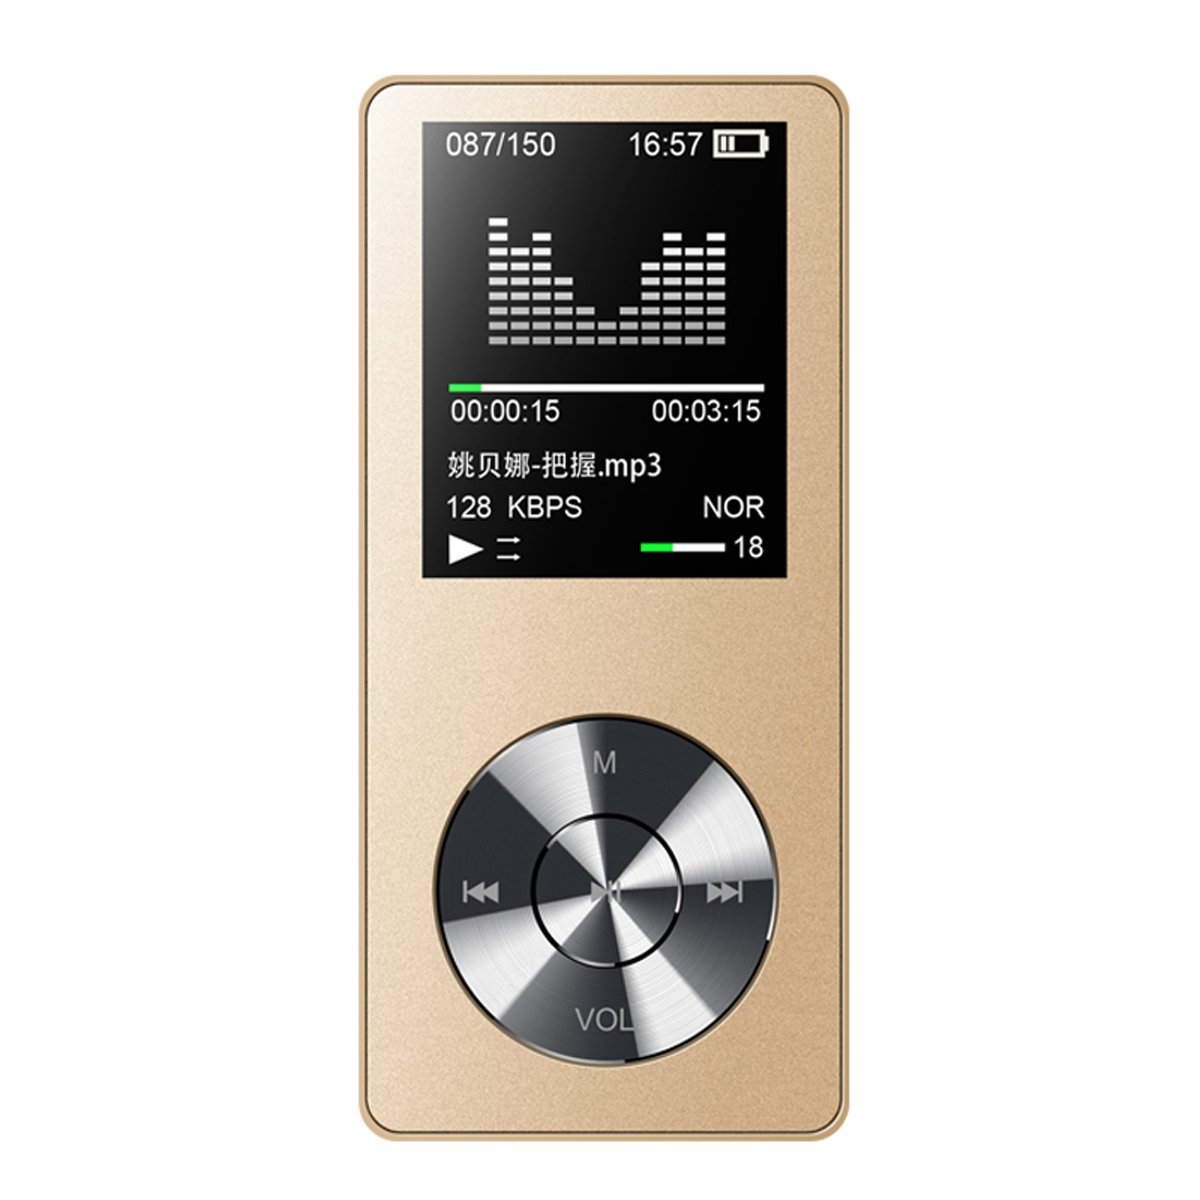 HONGYU M22 8GB Alloy Sport MP3 Music Player with Speaker and 1.8 Inch Screen FM Radio Voice Recorder 40 Hours Playback Hi-Fi quality lossless Portable Audio Player(Gold)